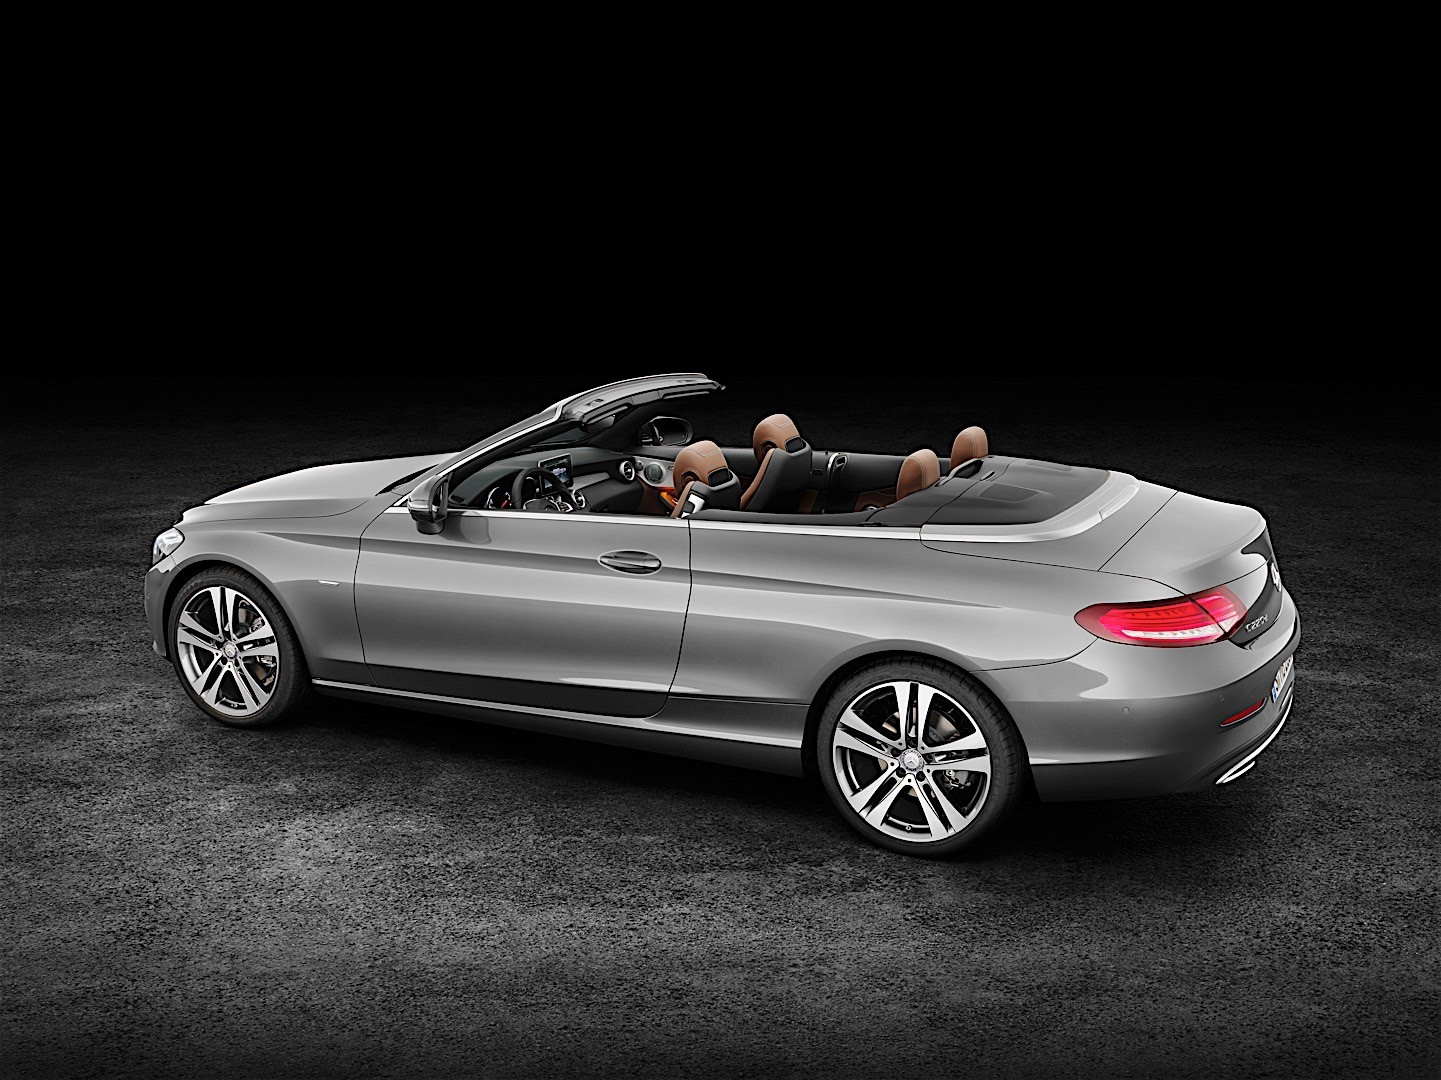 Mercedes benz c class cabriolet a205 specs 2016 2017 for Mercedes benz c class horsepower